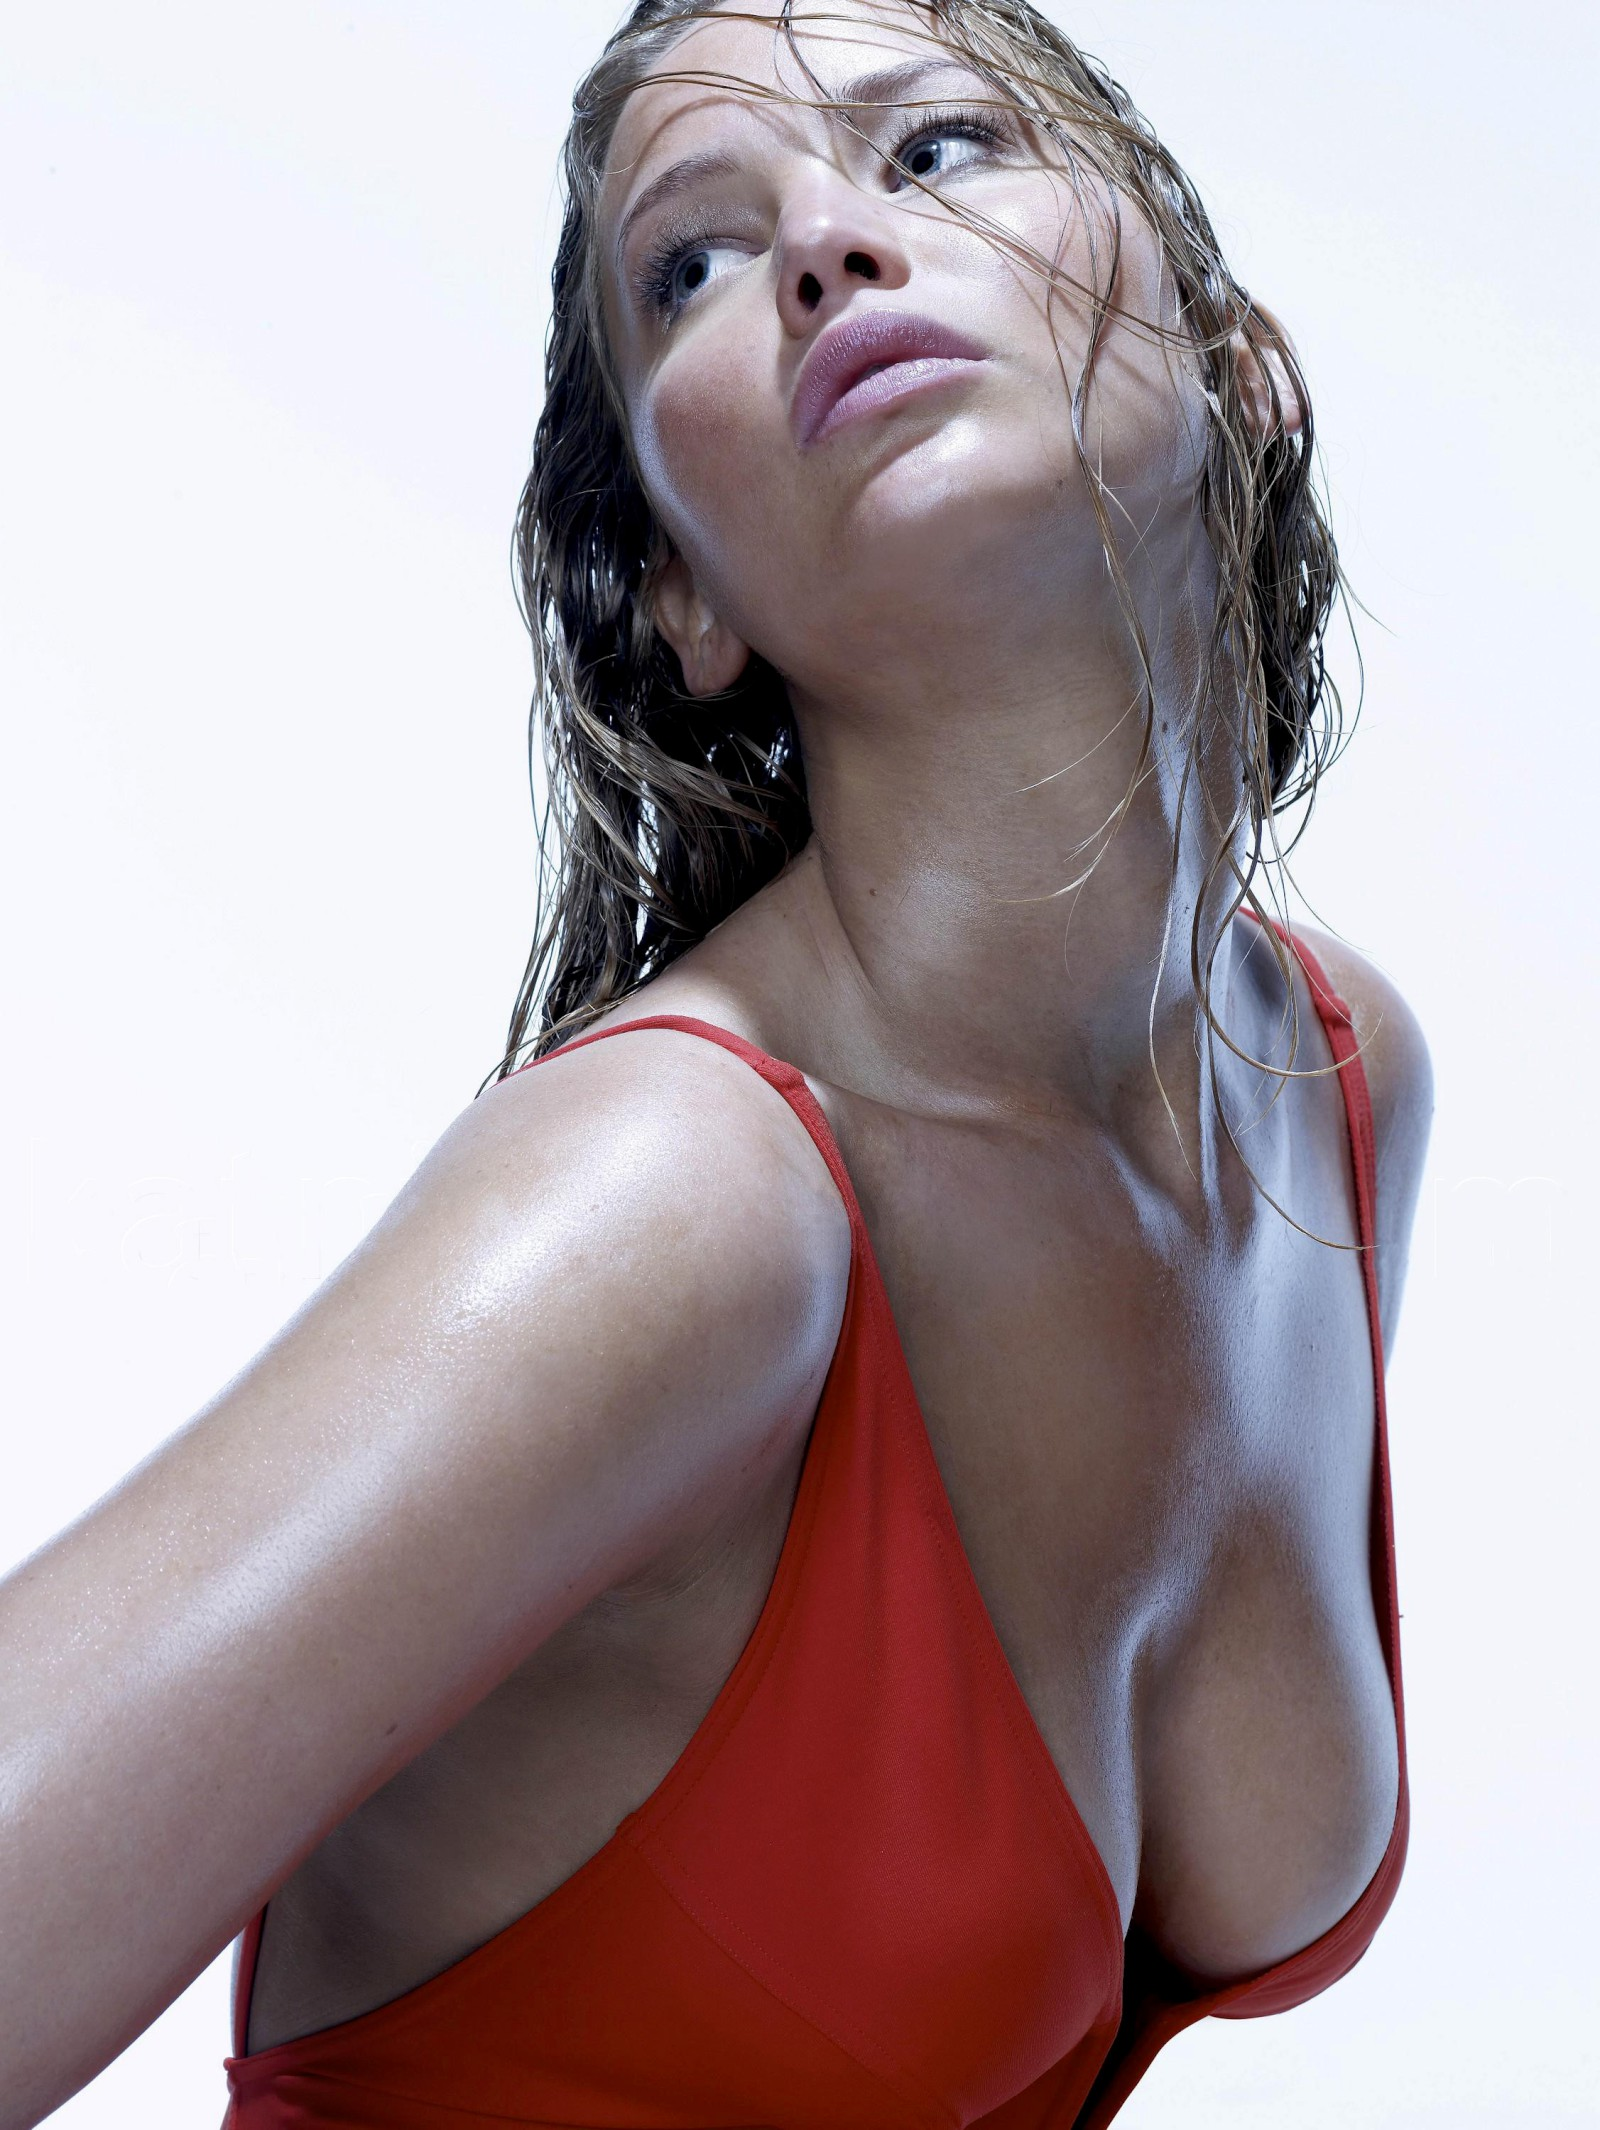 JenniferLawrence-boobs tits side esquire01